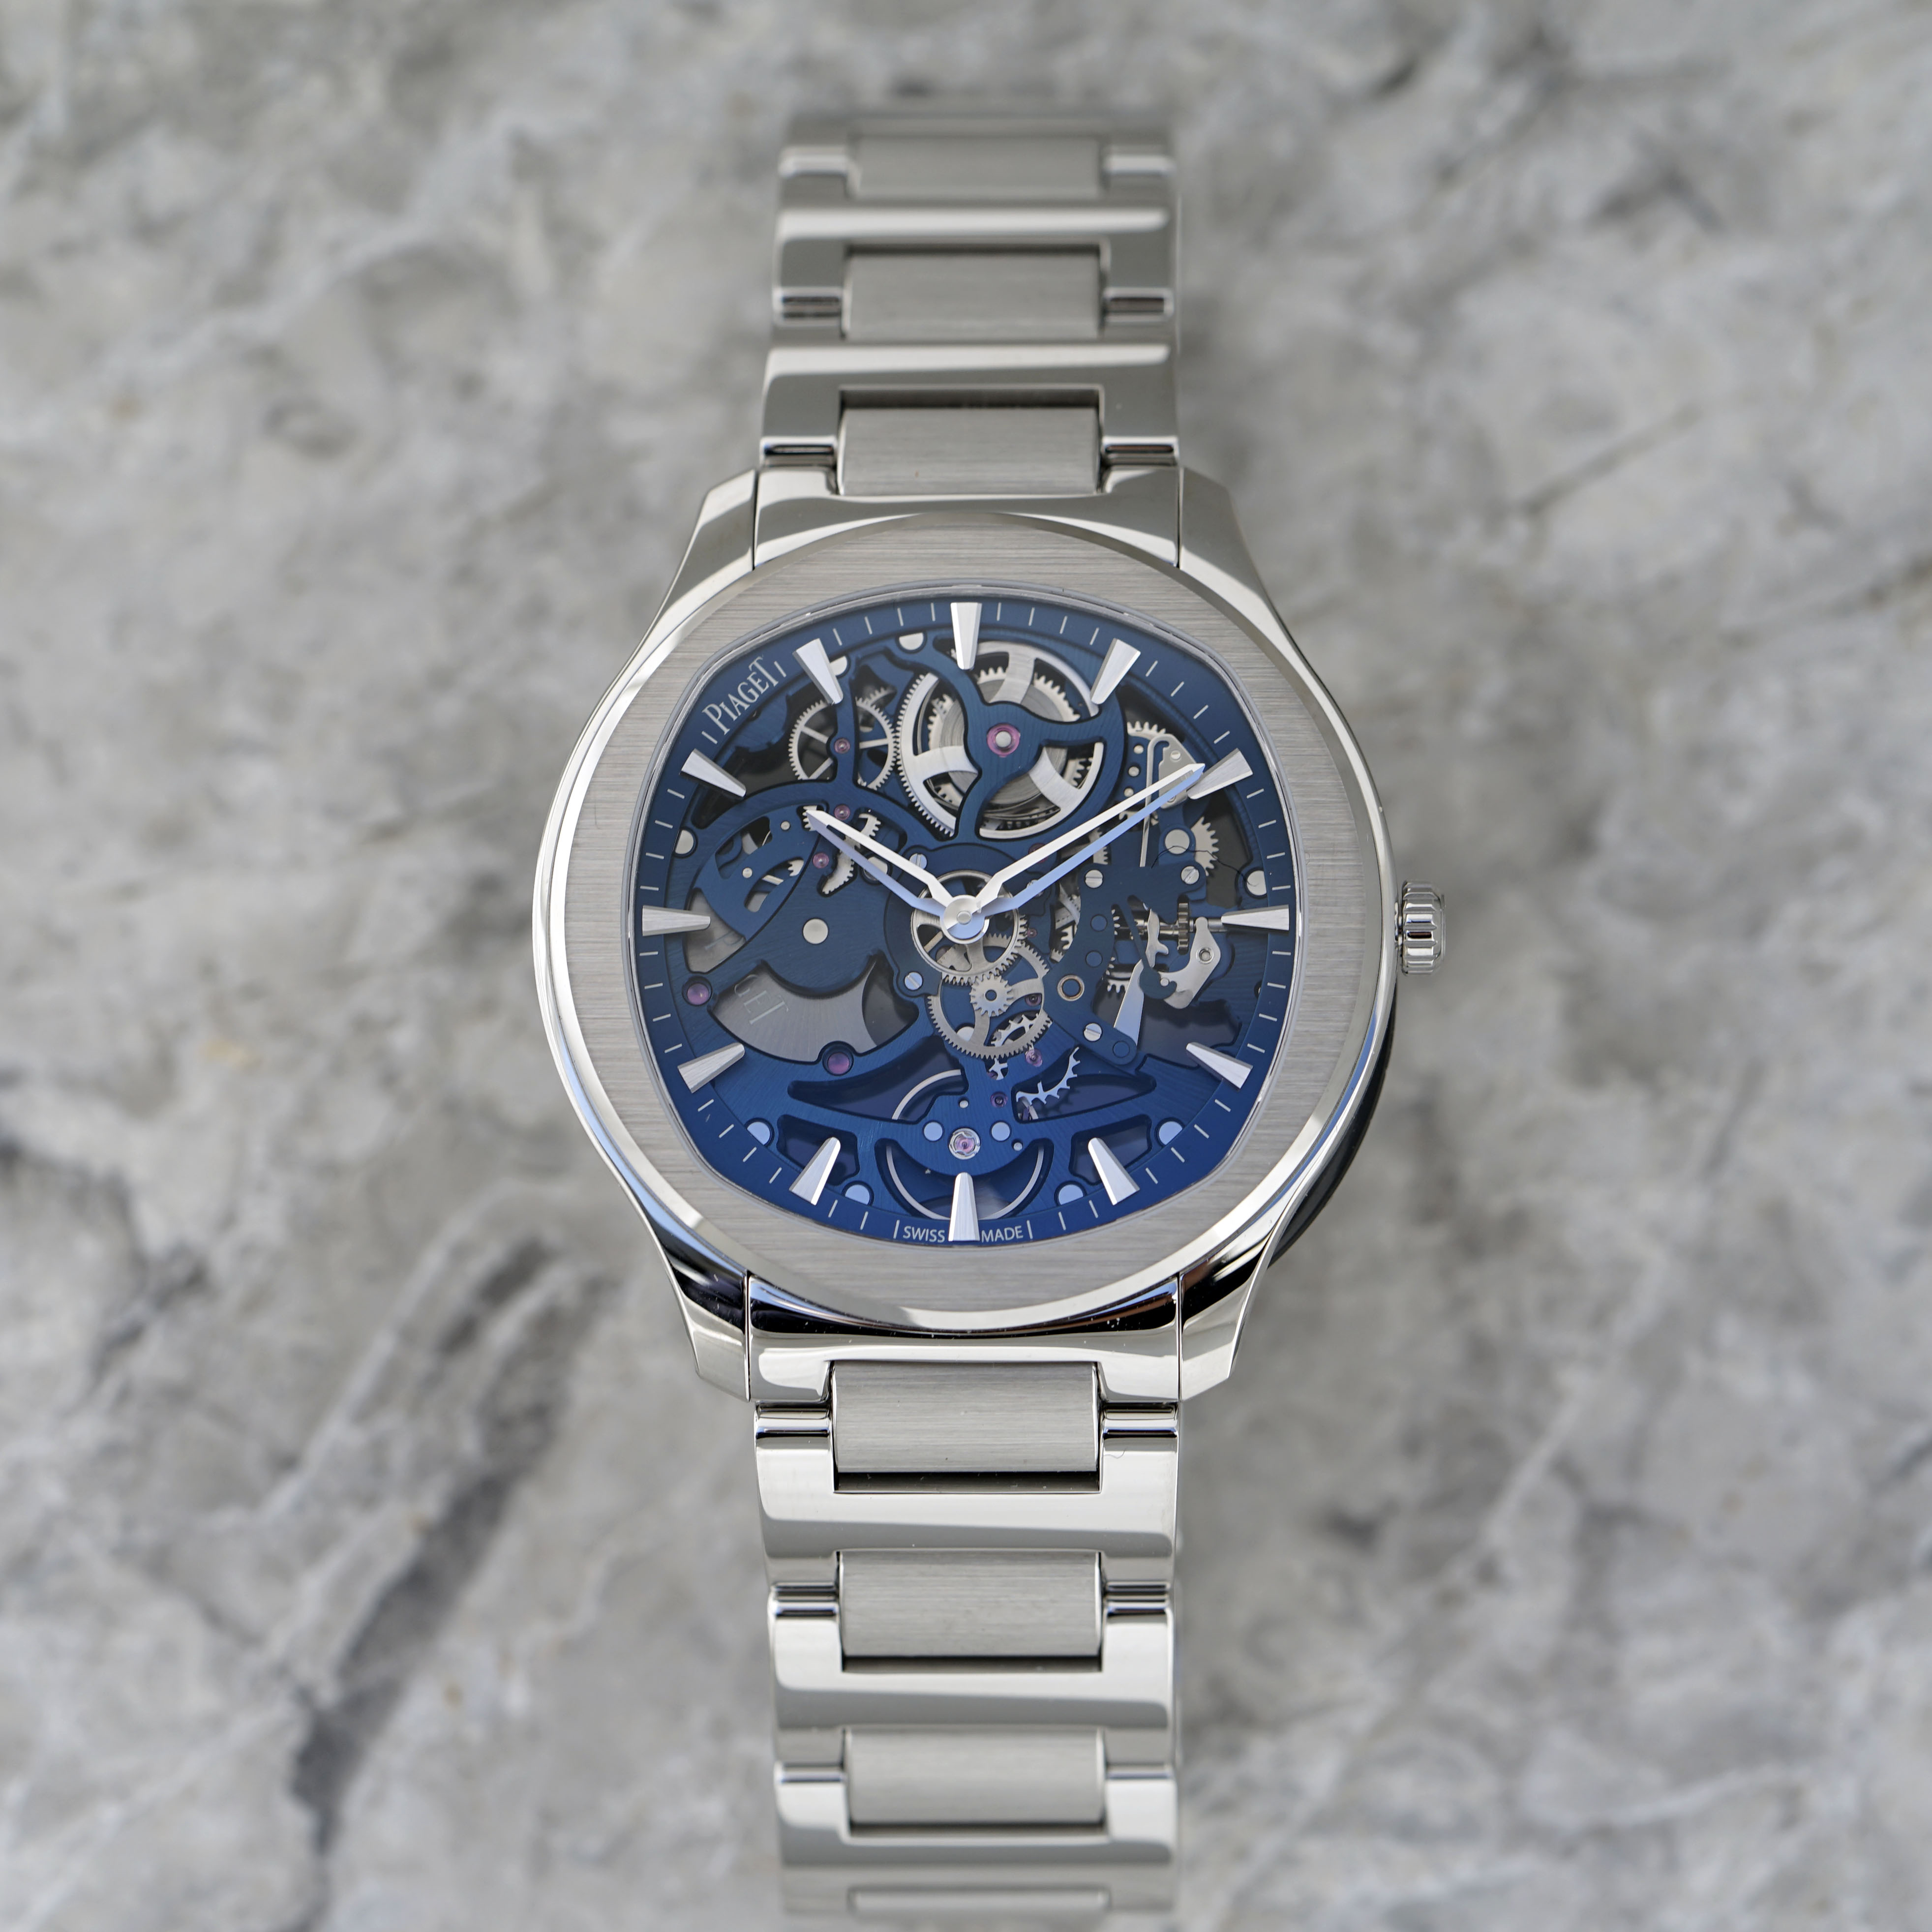 Piaget Polo Skeleton in stainless steel